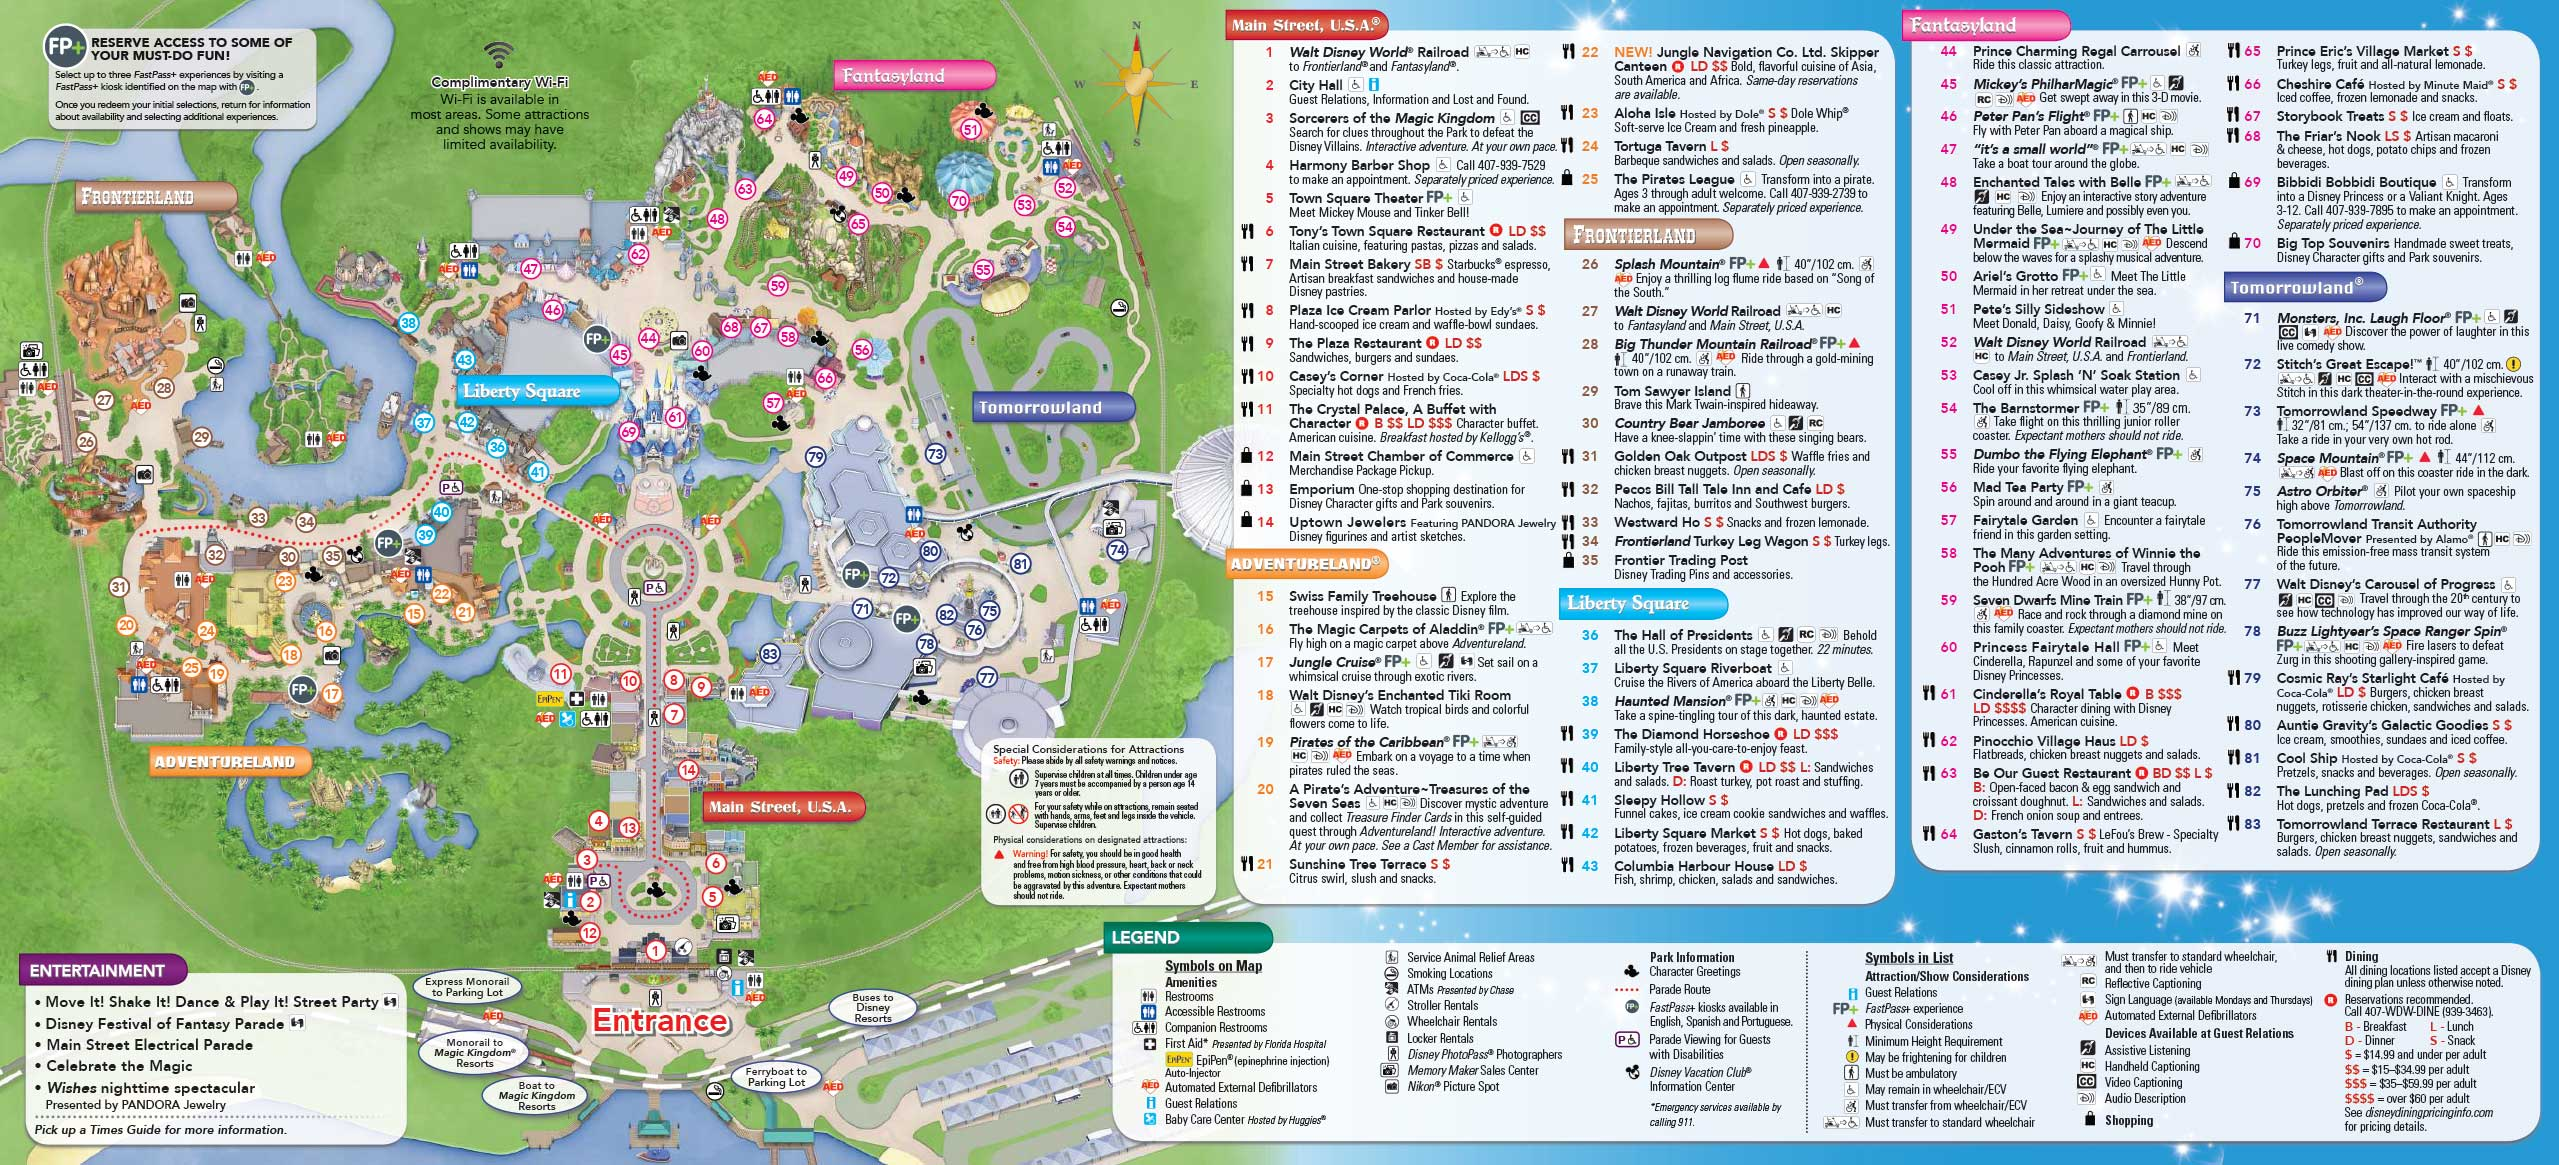 June 2016 walt disney world park maps photo 2 of 4 gumiabroncs Images